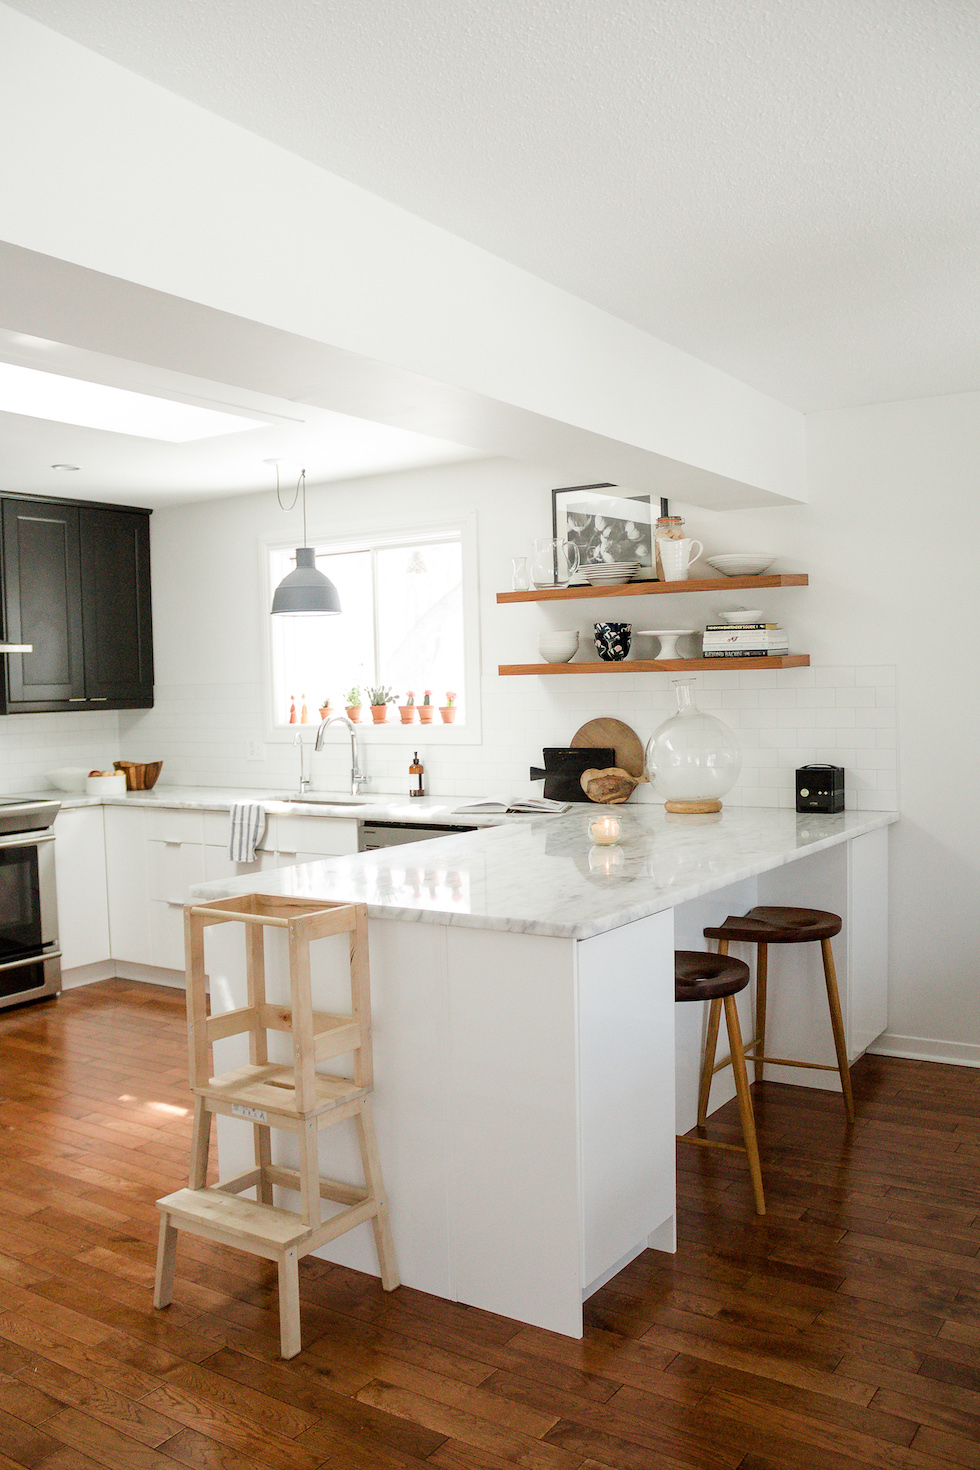 Ikea Kitchen Design Cost All The Details Of Our Custom Ikea Kitchen And What It Cost